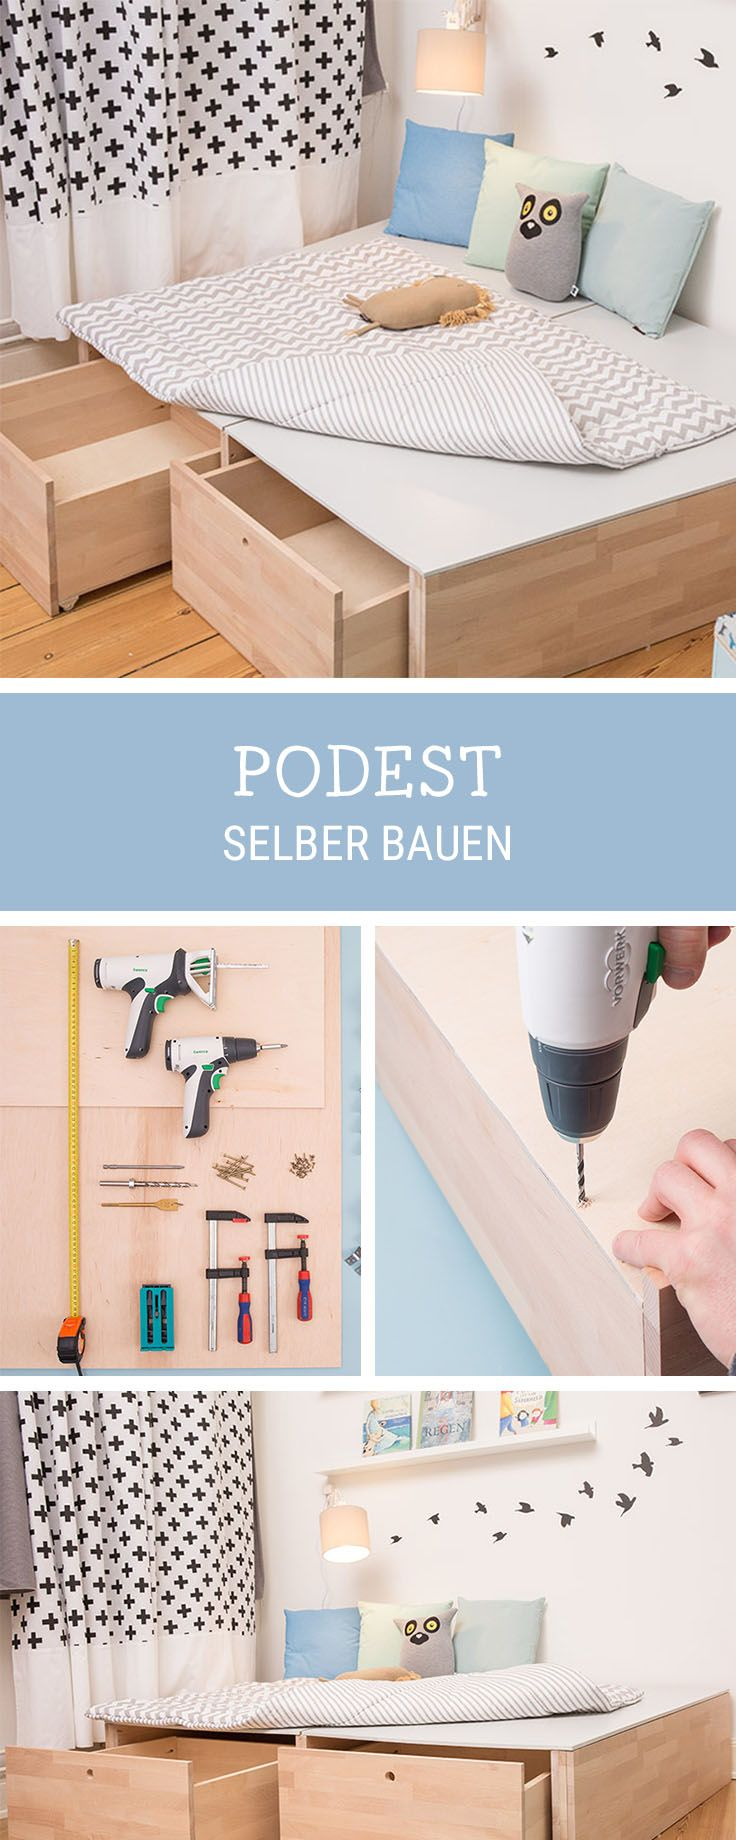 die besten 25 podestbett ideen auf pinterest ikea plattform bett ideen podestbett und. Black Bedroom Furniture Sets. Home Design Ideas